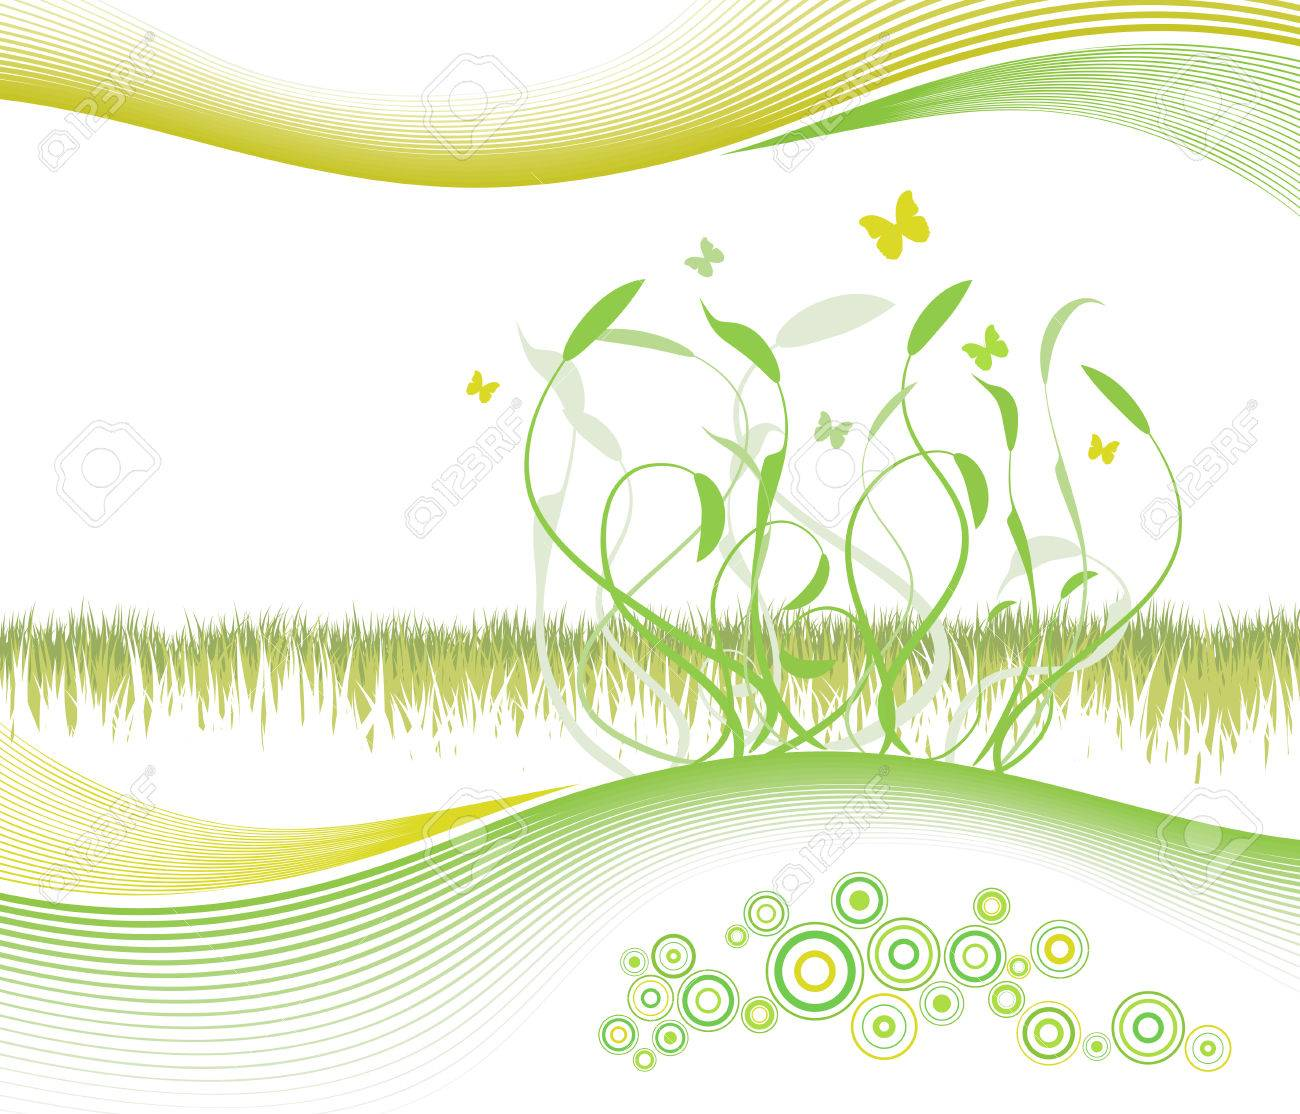 Vector illustration of a summer/spring floral and lined art background with cheery circles and copy space. Stock Vector - 2639954